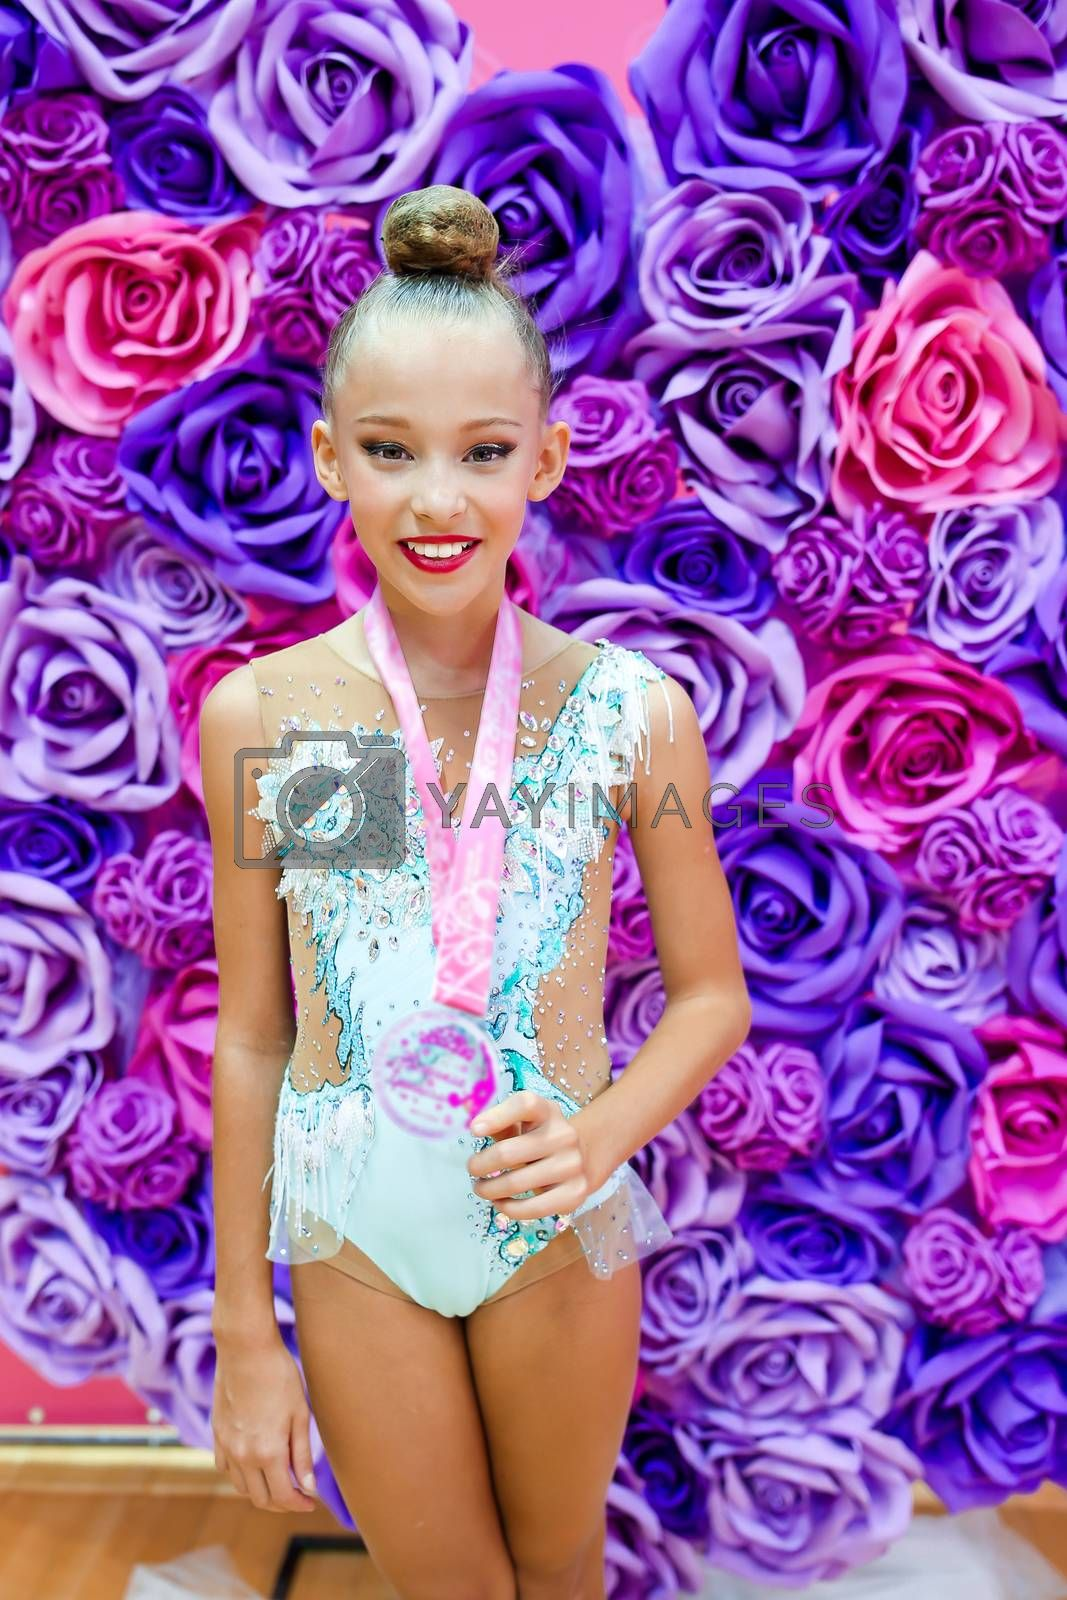 Little gymnast with her sports awards on the carpet